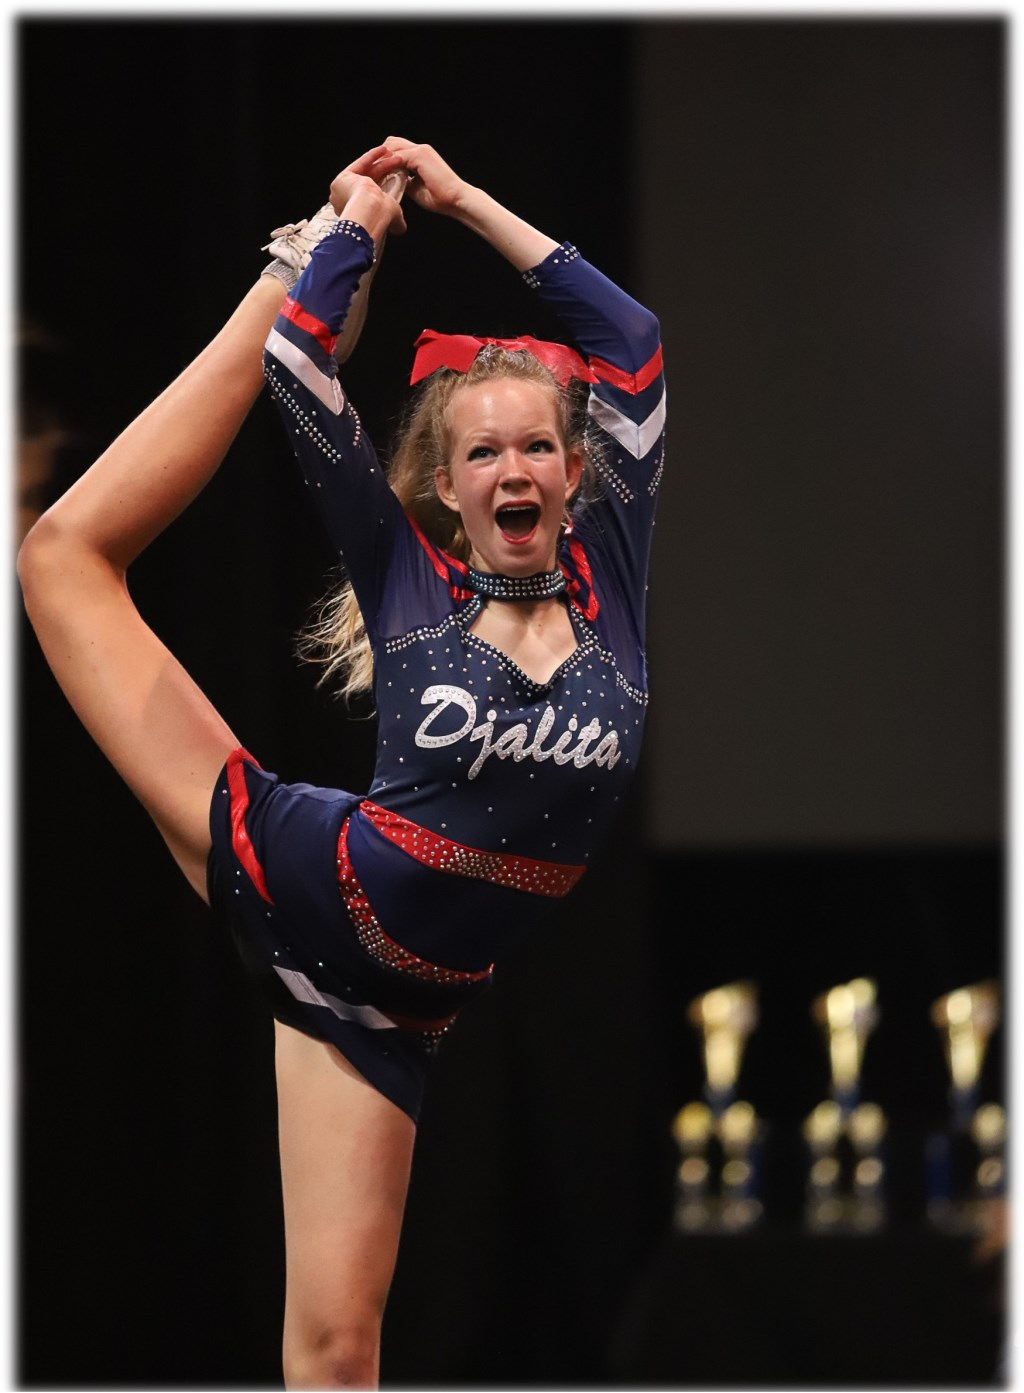 Cheerleader Demi in actie Foto: CCVA © Persgroep